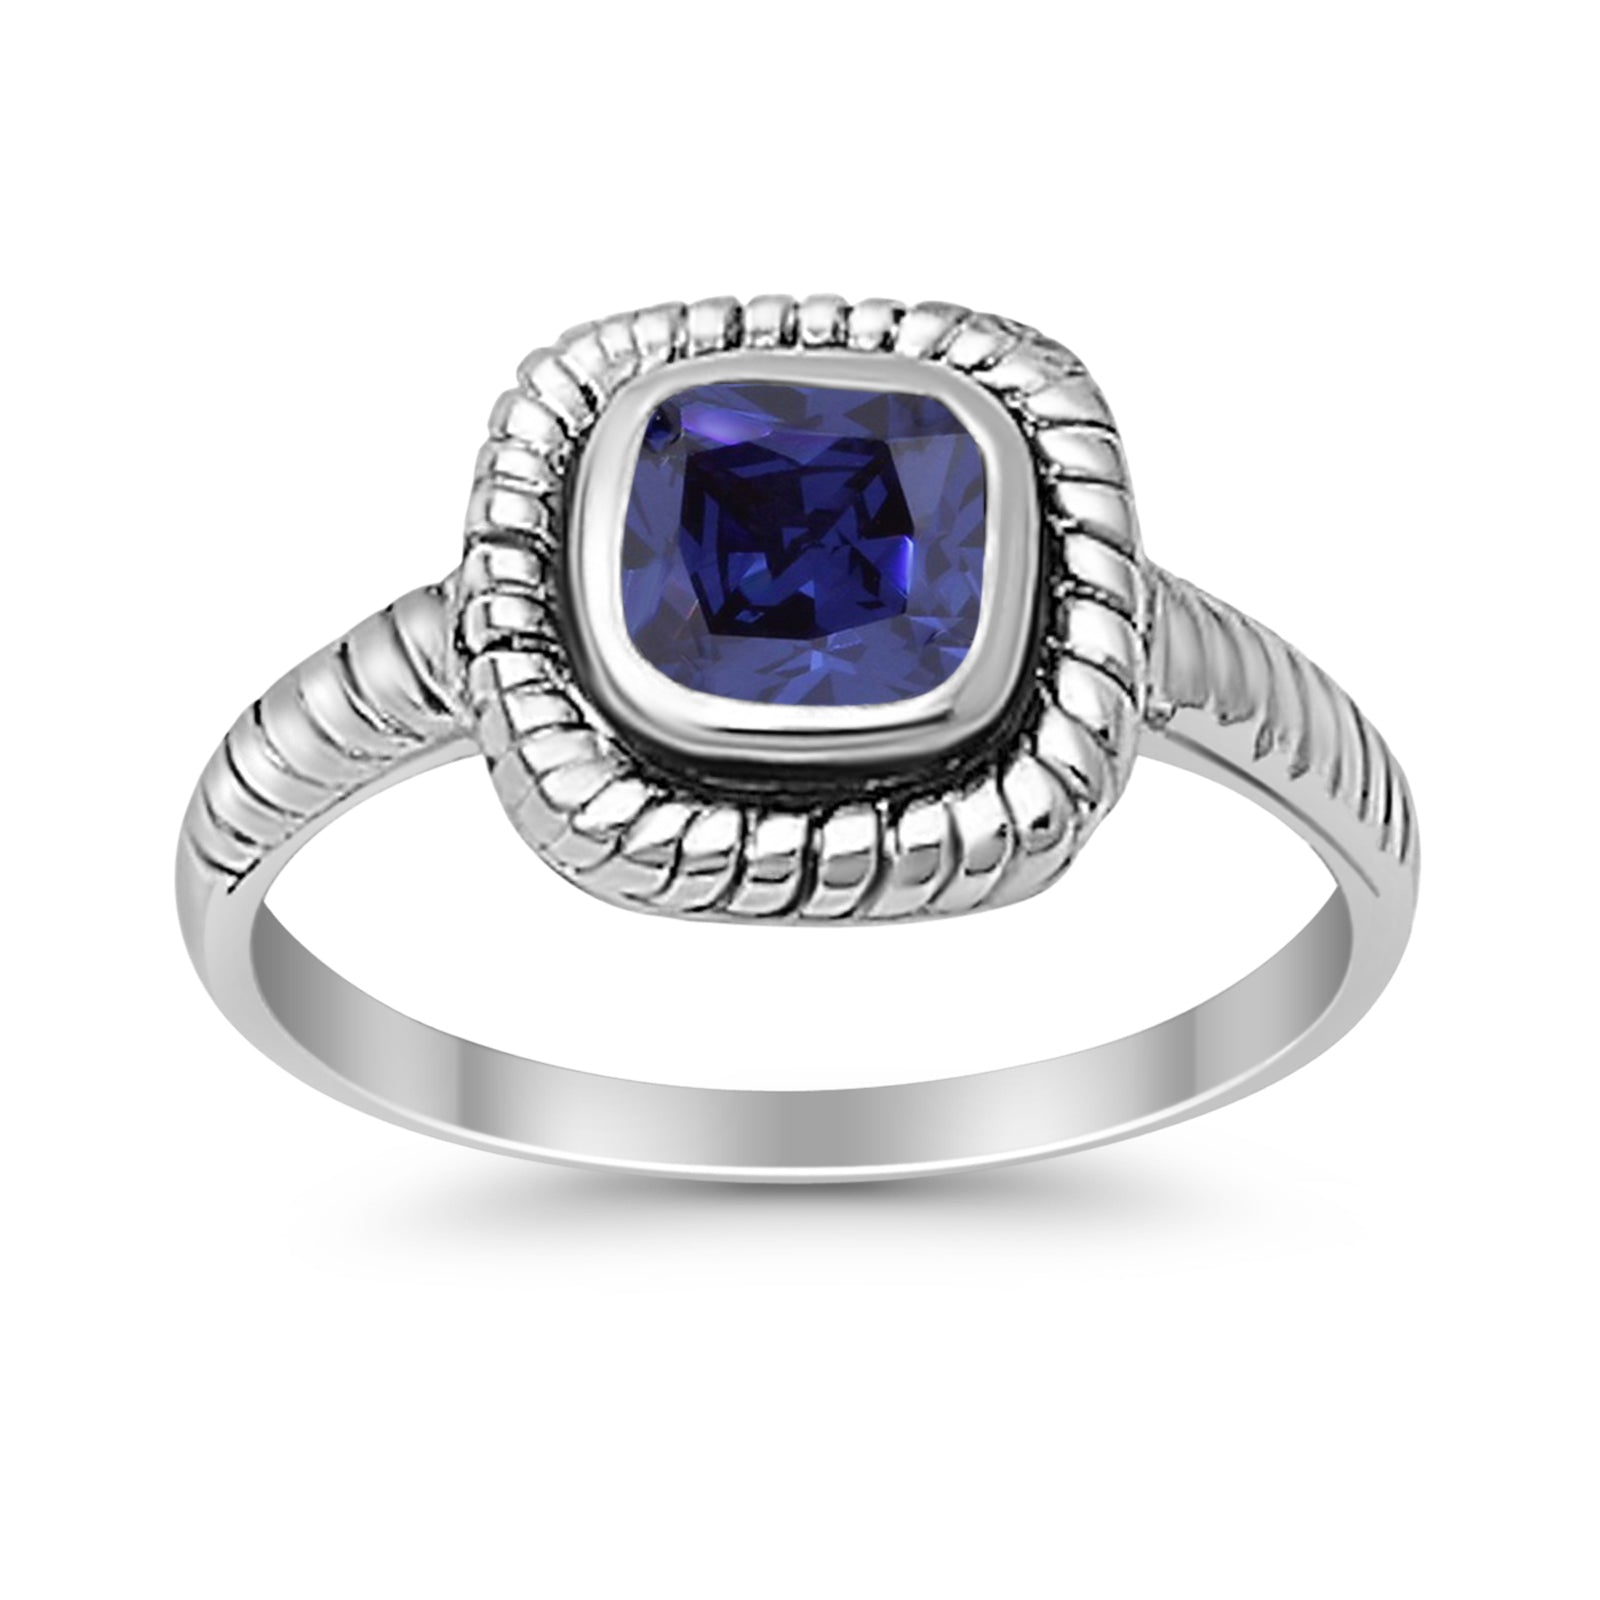 Princess Cut Simulated Blue Sapphire Cubic Zirconia Oxidized Design Ring 925 Sterling Silver